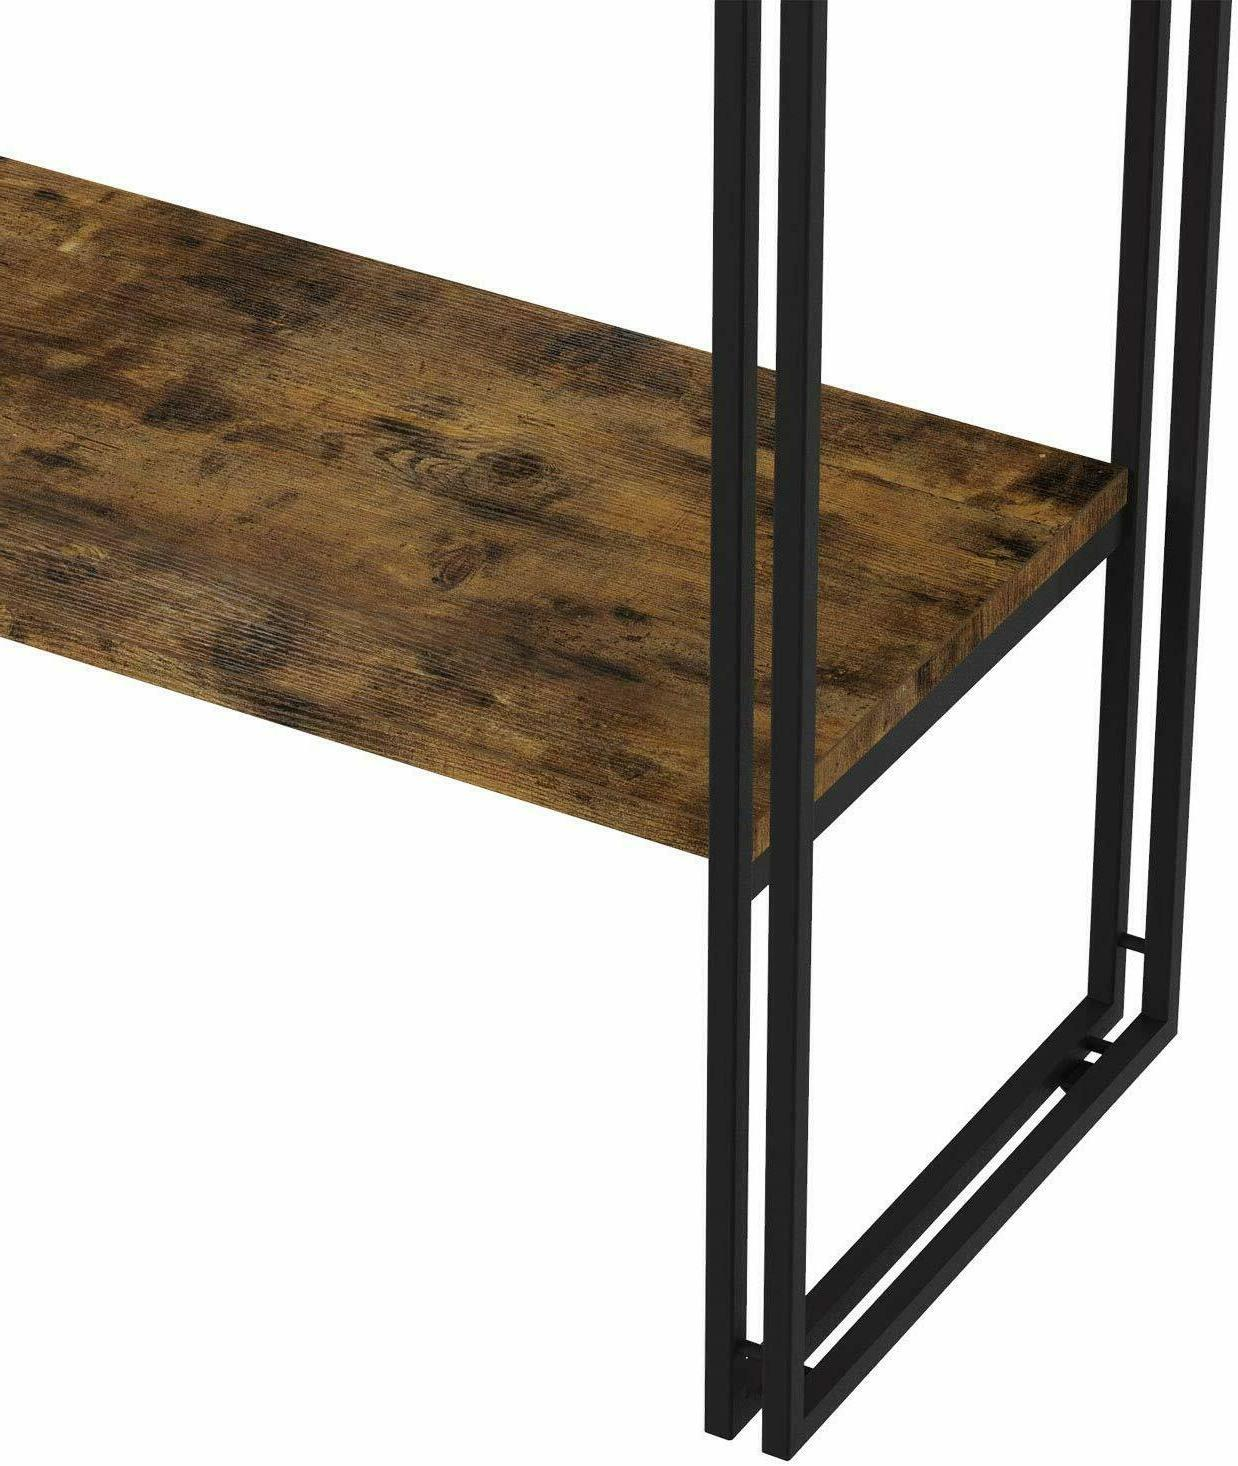 IRONCK Rustic Table 2 with